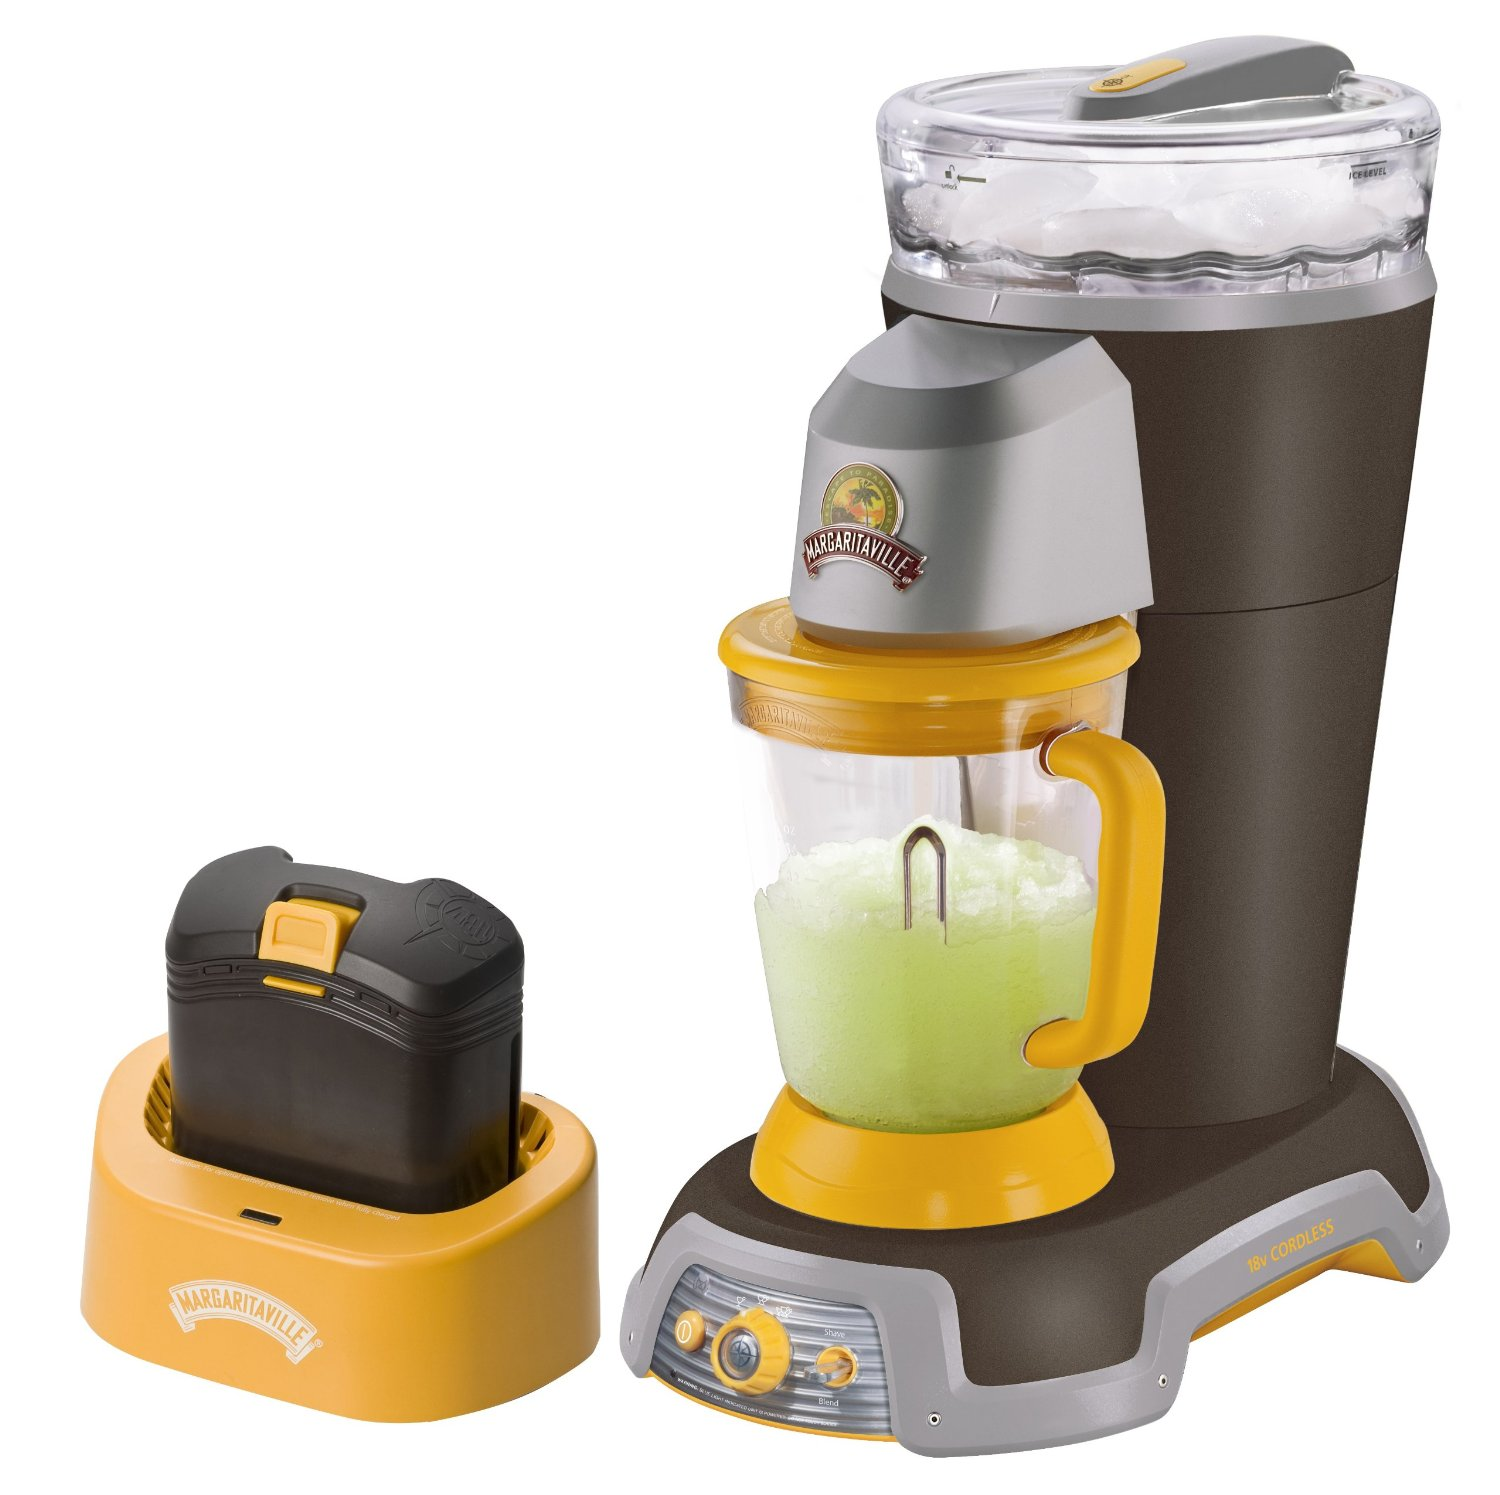 Battery Operated Hand Blender ~ What s the best blender for camping and tailgating